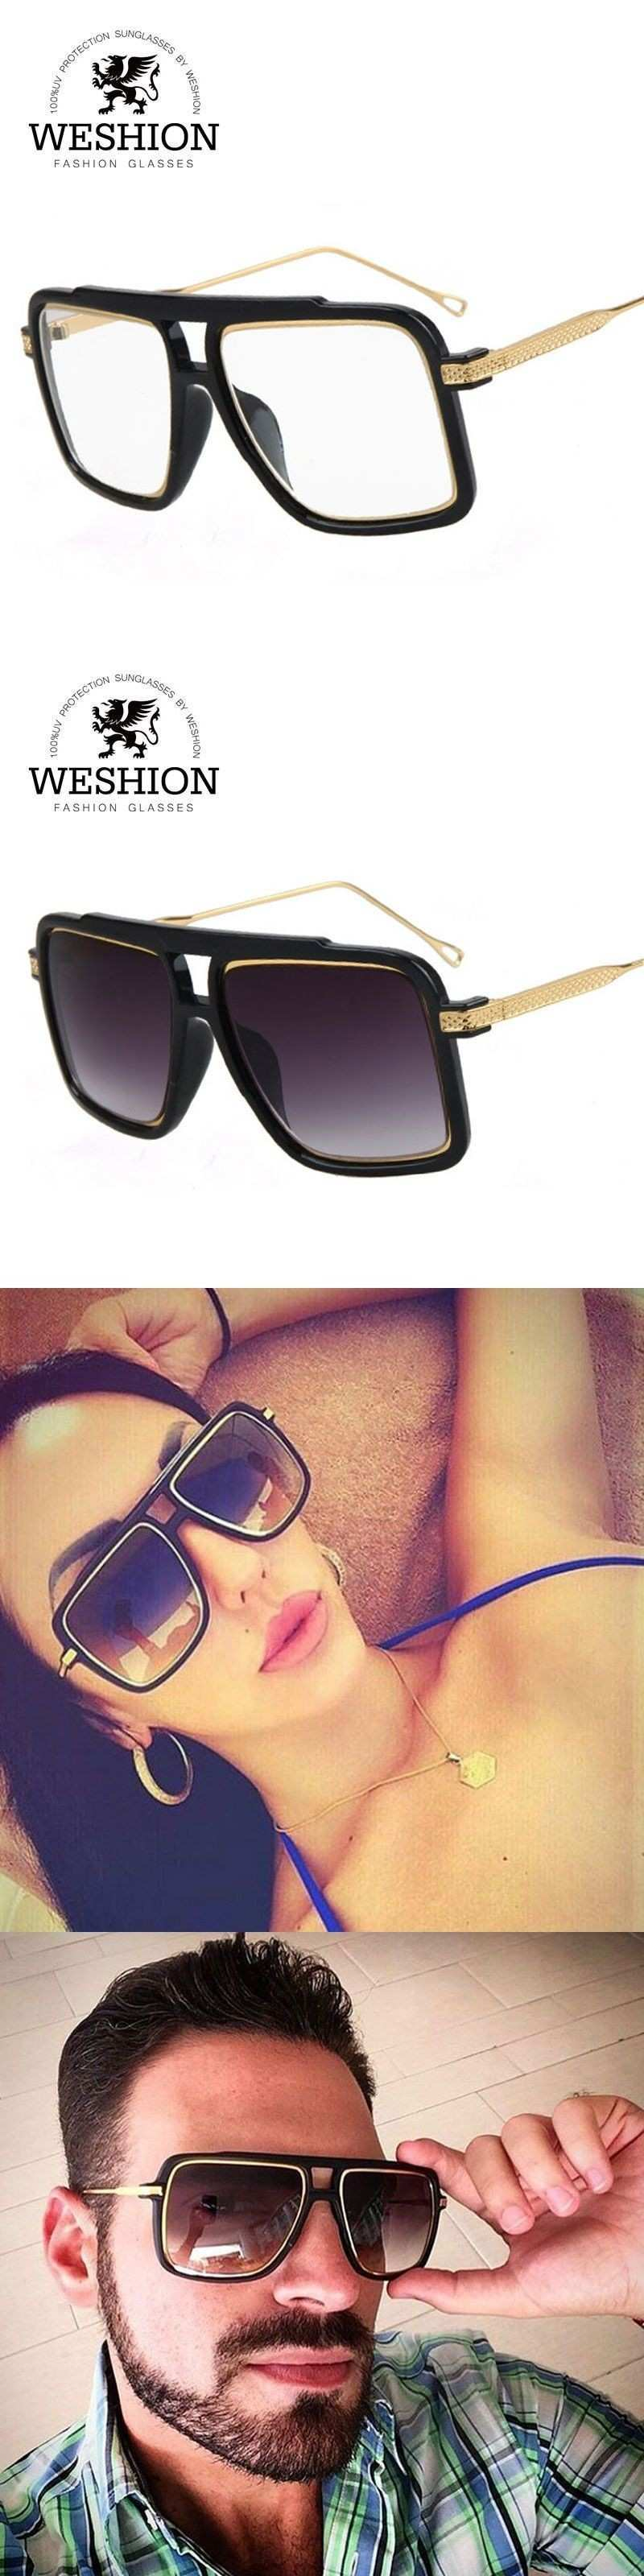 WESHION Star Style Square Men Sunglasses HD Lens Alloy Frame Fashion